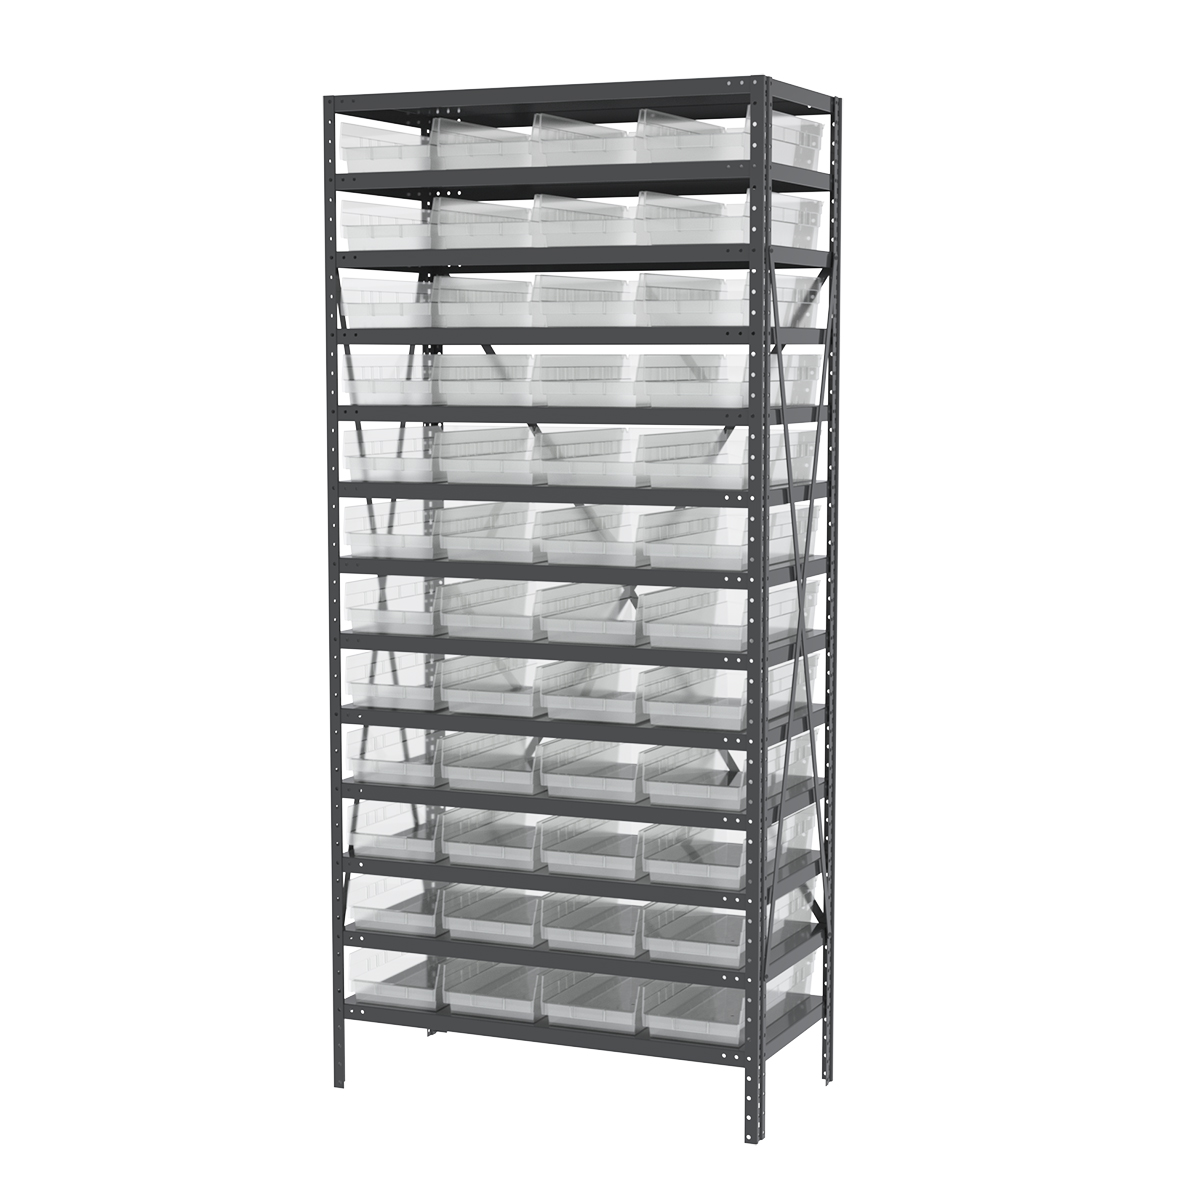 Steel Shelving Kit, 18x36x79, 48 Bins, Gray/Clear.  This item sold in carton quantities of 1.